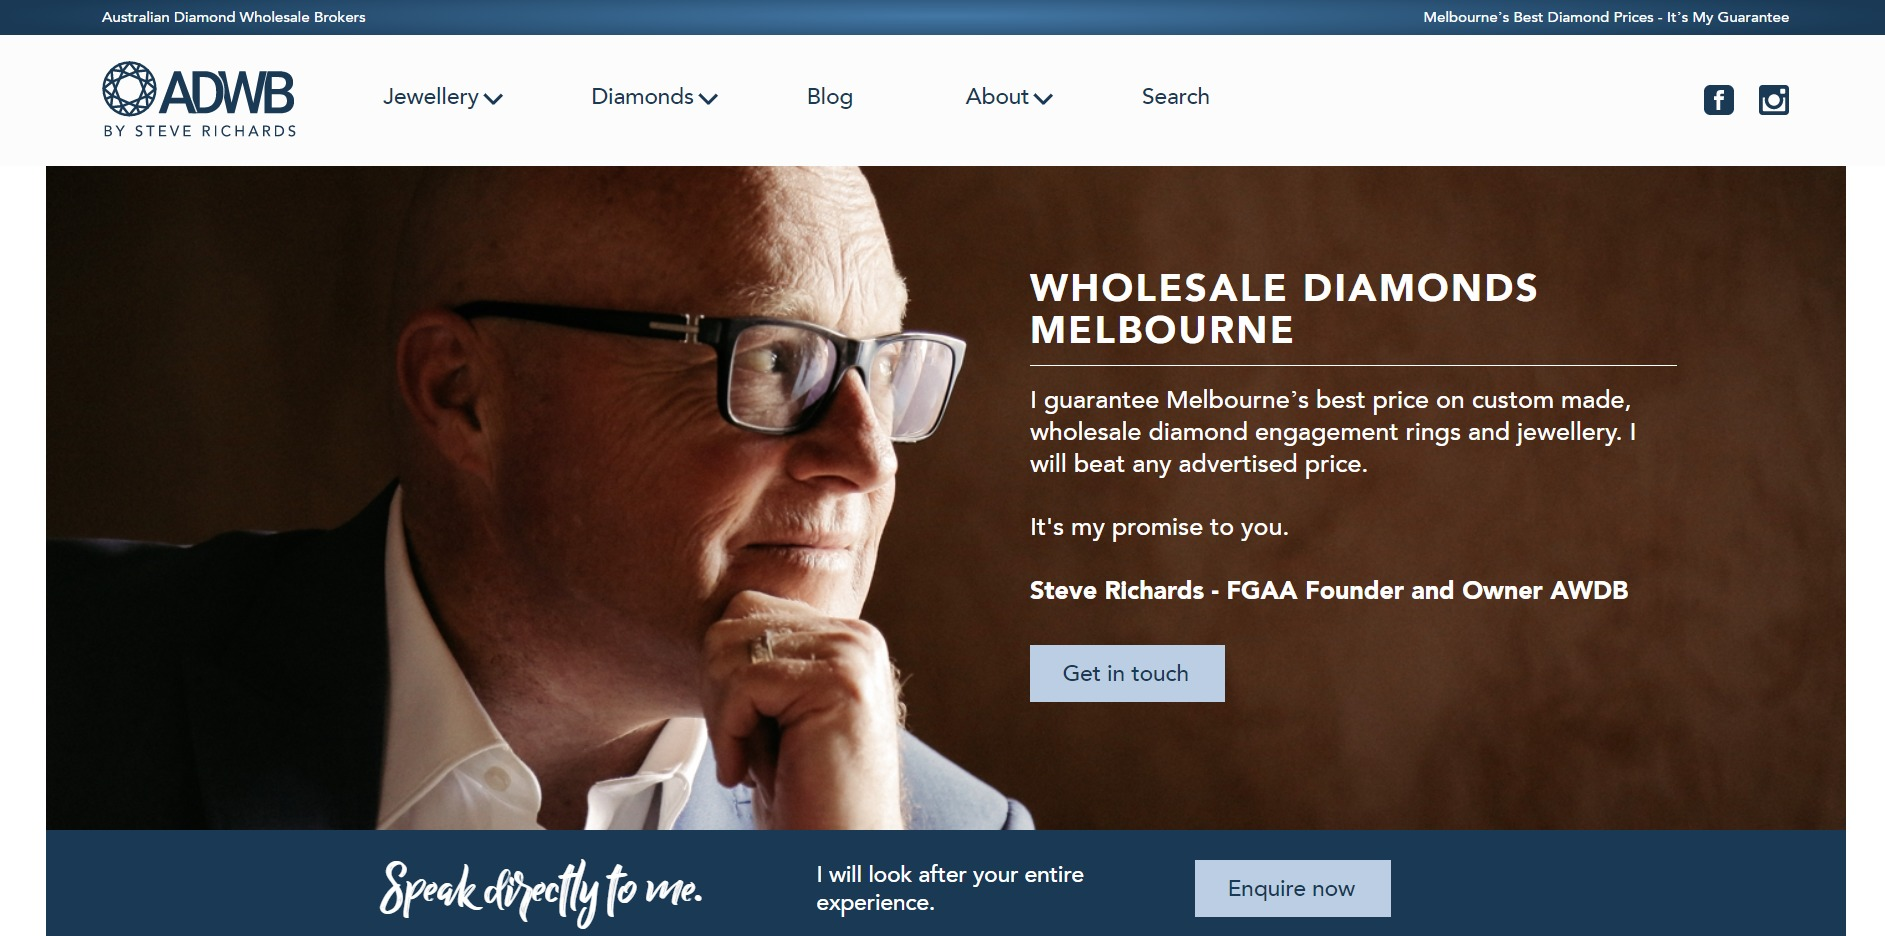 Australian Diamond Wholesale Brokers By Steve Richards